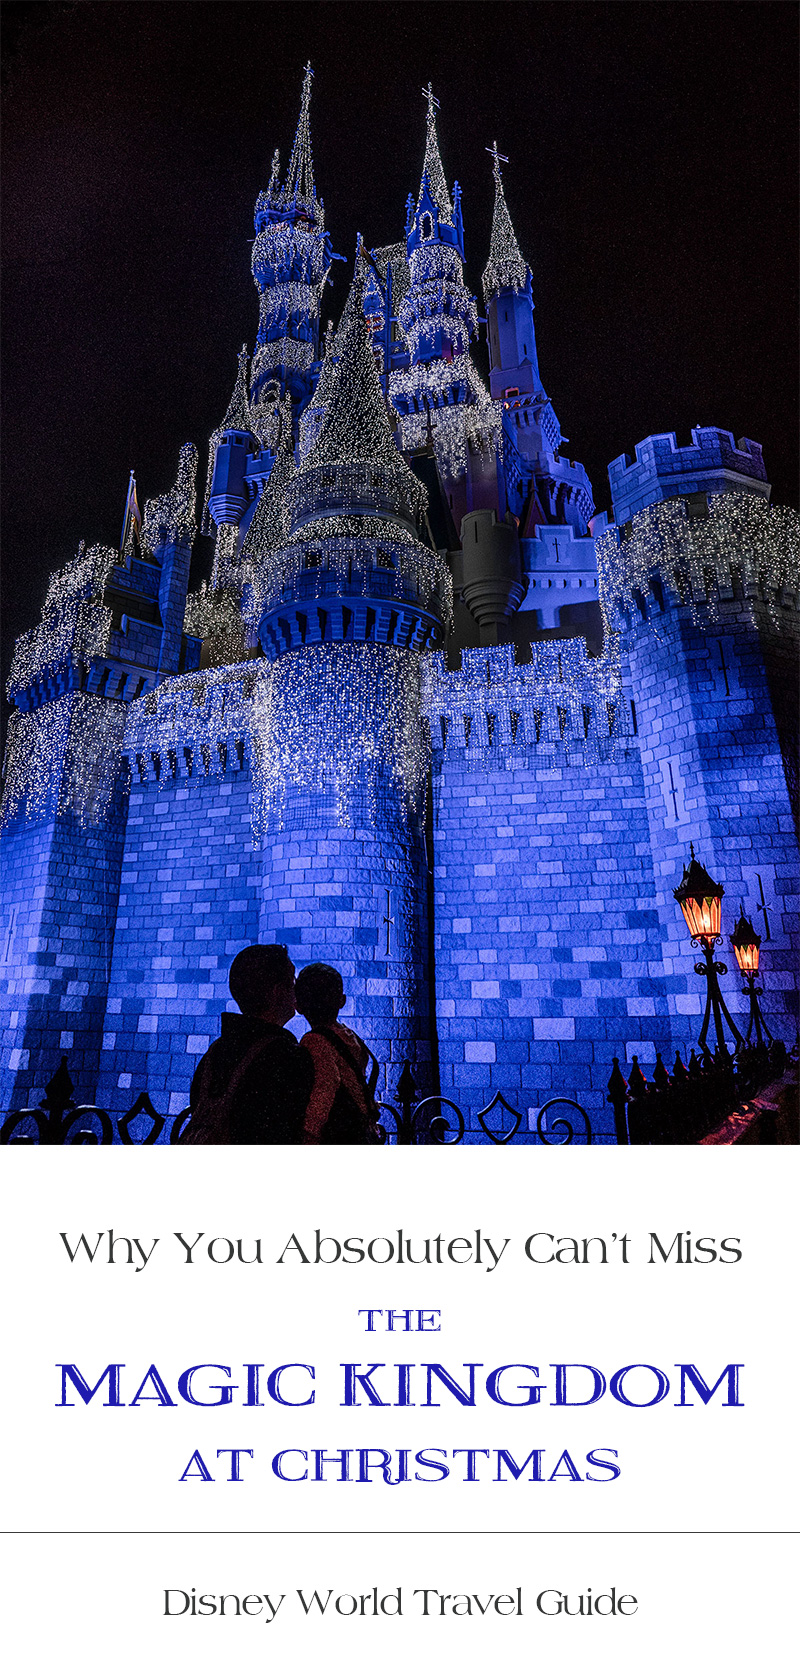 Why-You-Absolutely-Cannot-Miss-The-Magic-Kingdom-at-Christmas